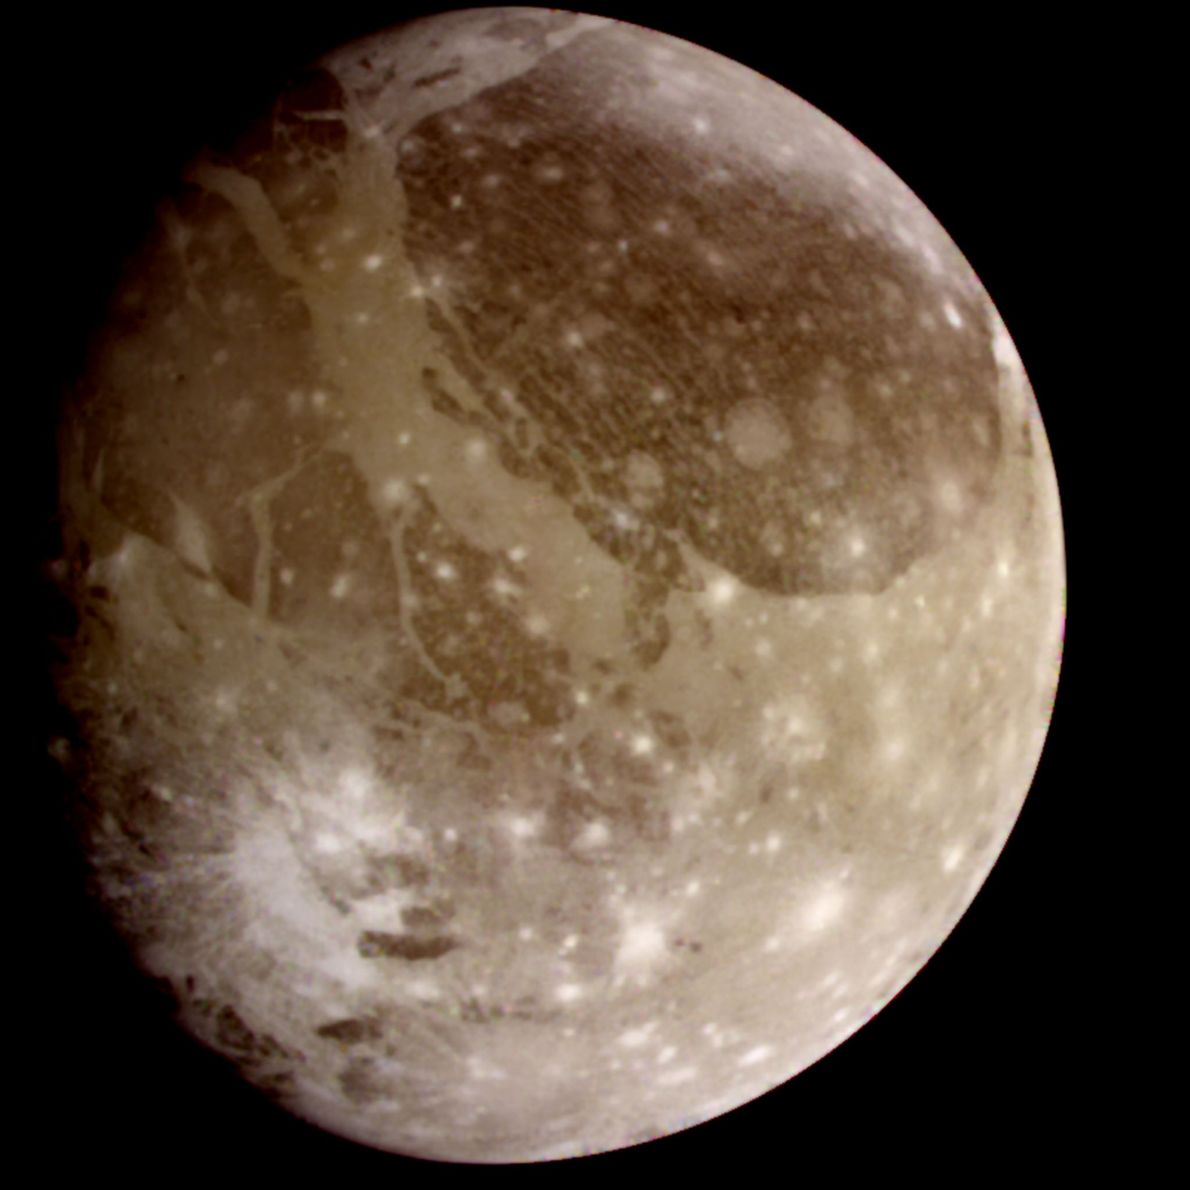 The Galileo spacecraft, which toured the Jupiter system from 1995 to 2003, captured this image of ...